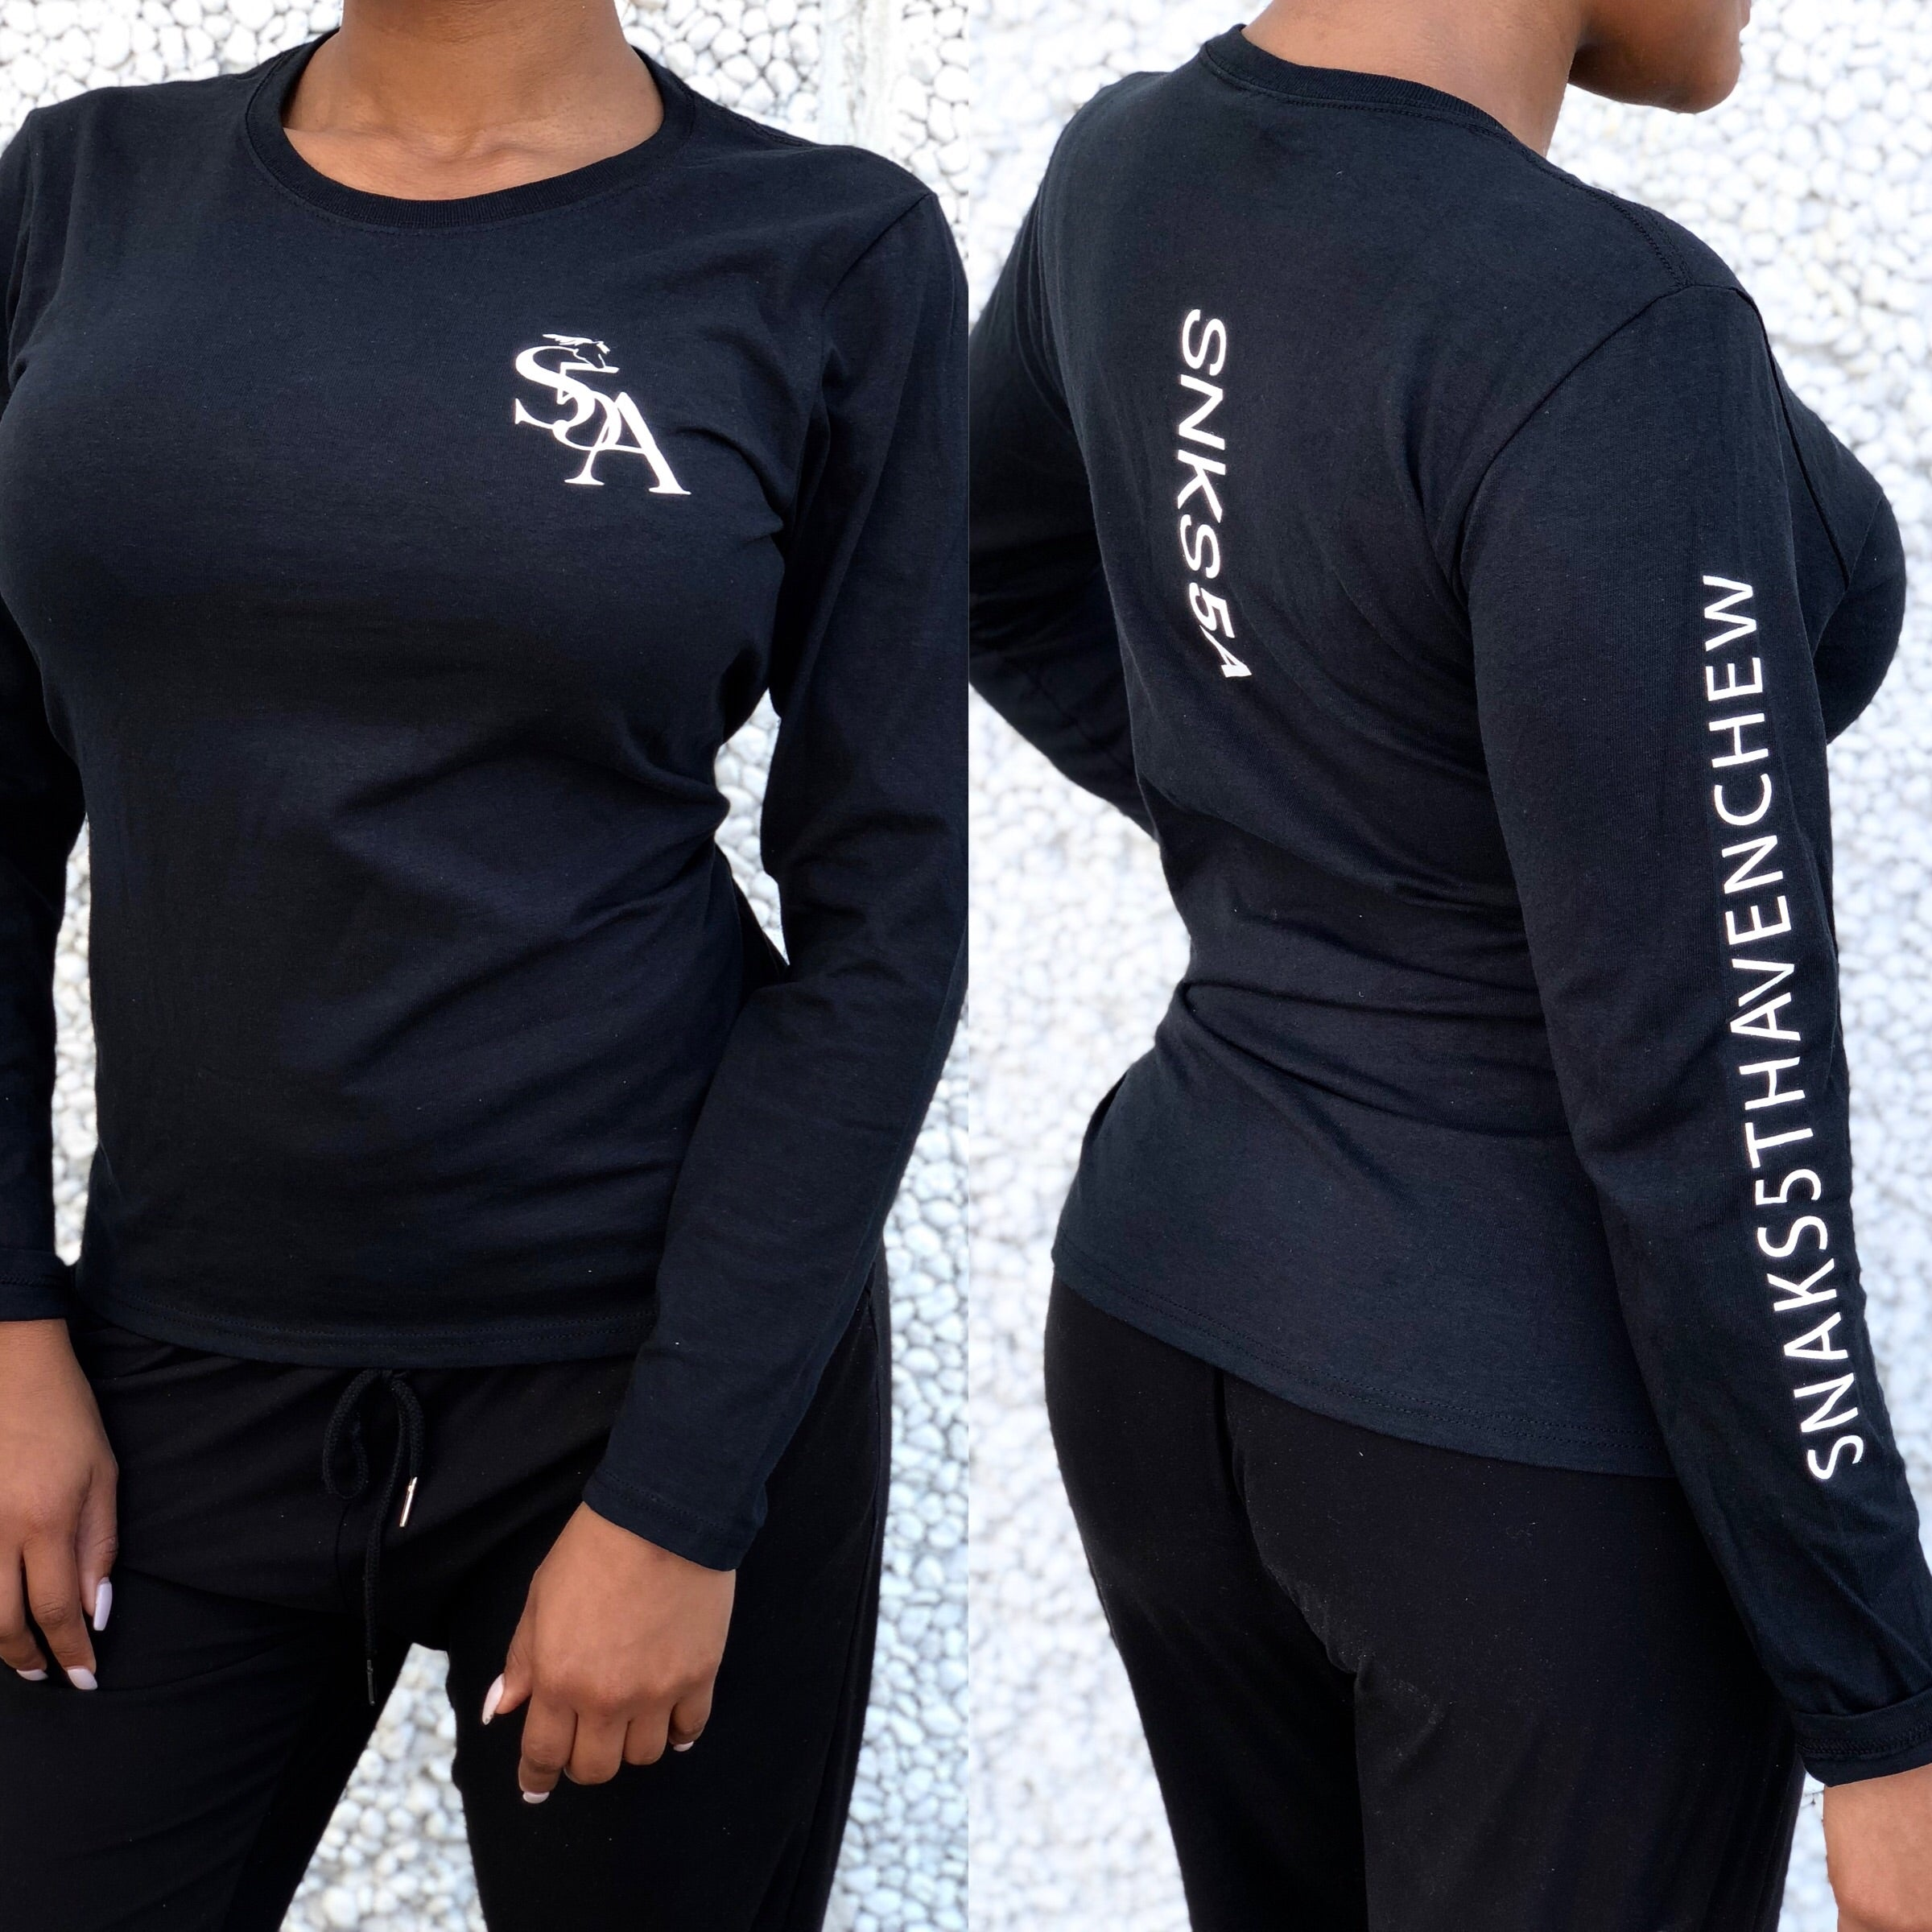 Long Sleeve Schooling Tee